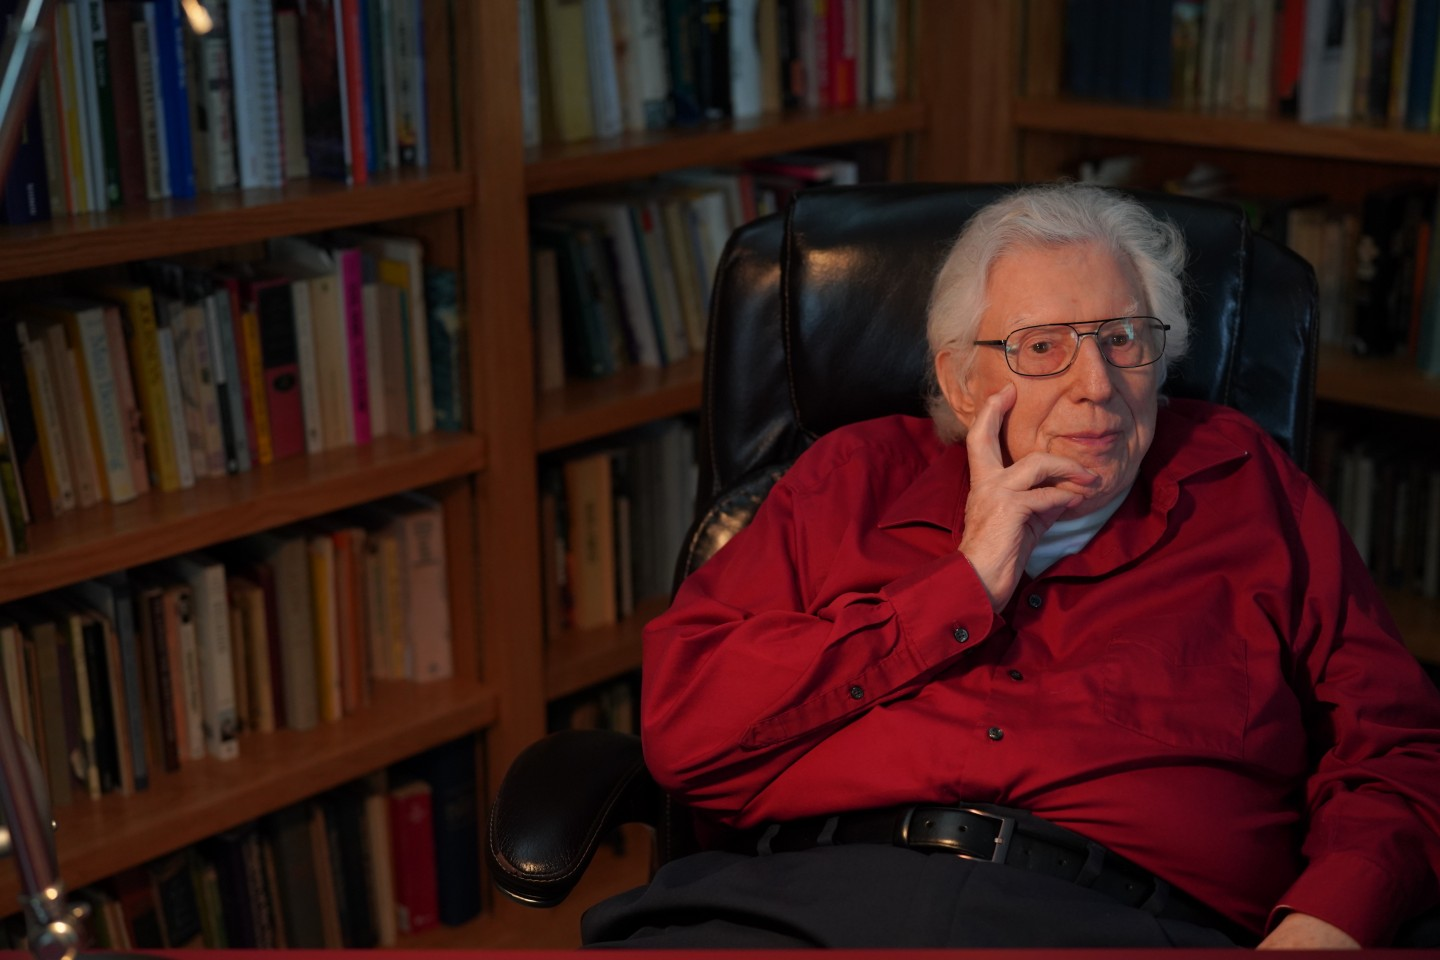 Dr. Rudolf Siebert sits in his home office surrounded by book shelves.